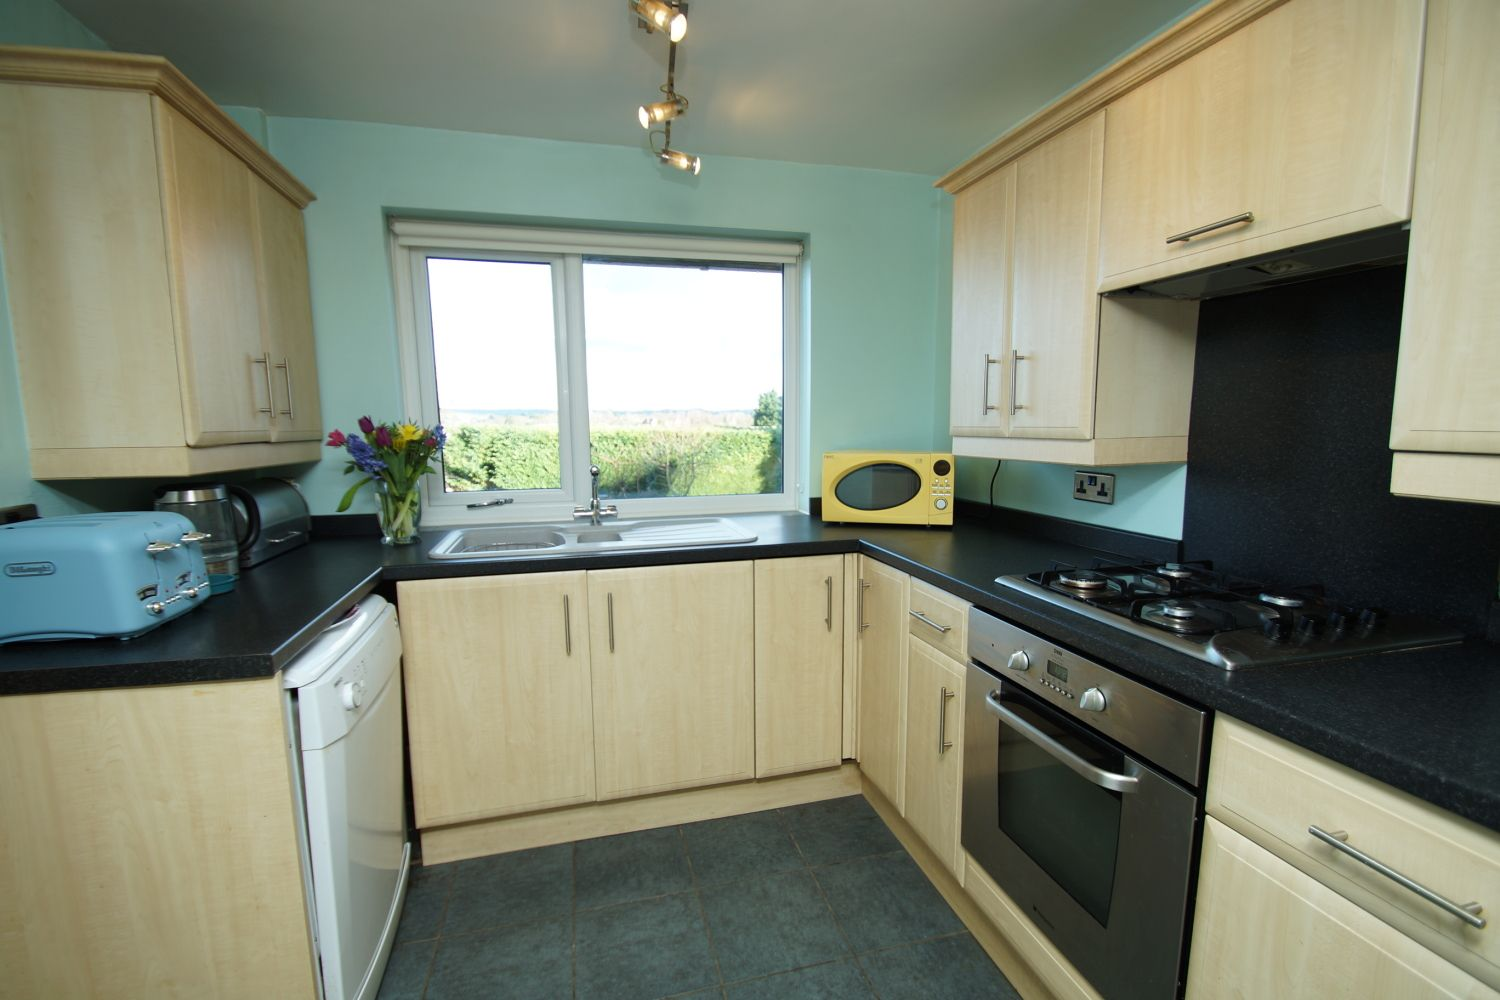 3 bed detached for sale in Fox Lane, Bromsgrove  - Property Image 6